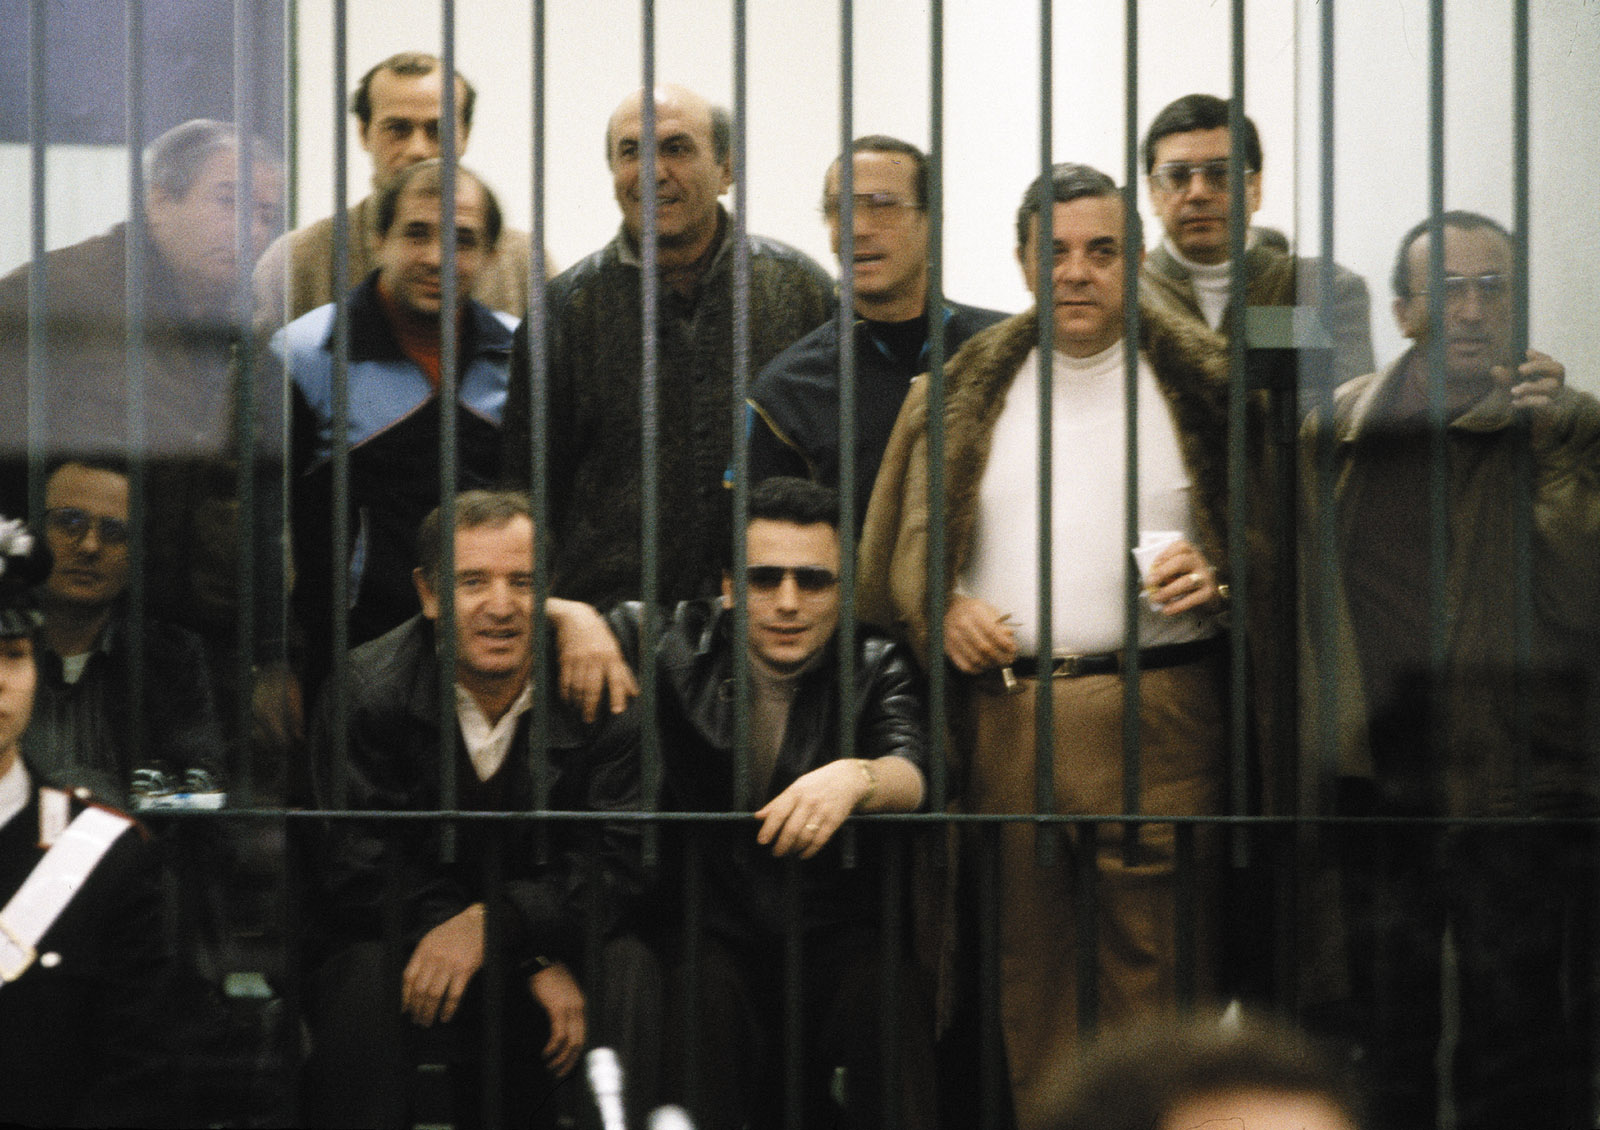 Members of the Cosa Nostra during the largest-ever anti-mafia trial, Palermo, 1986